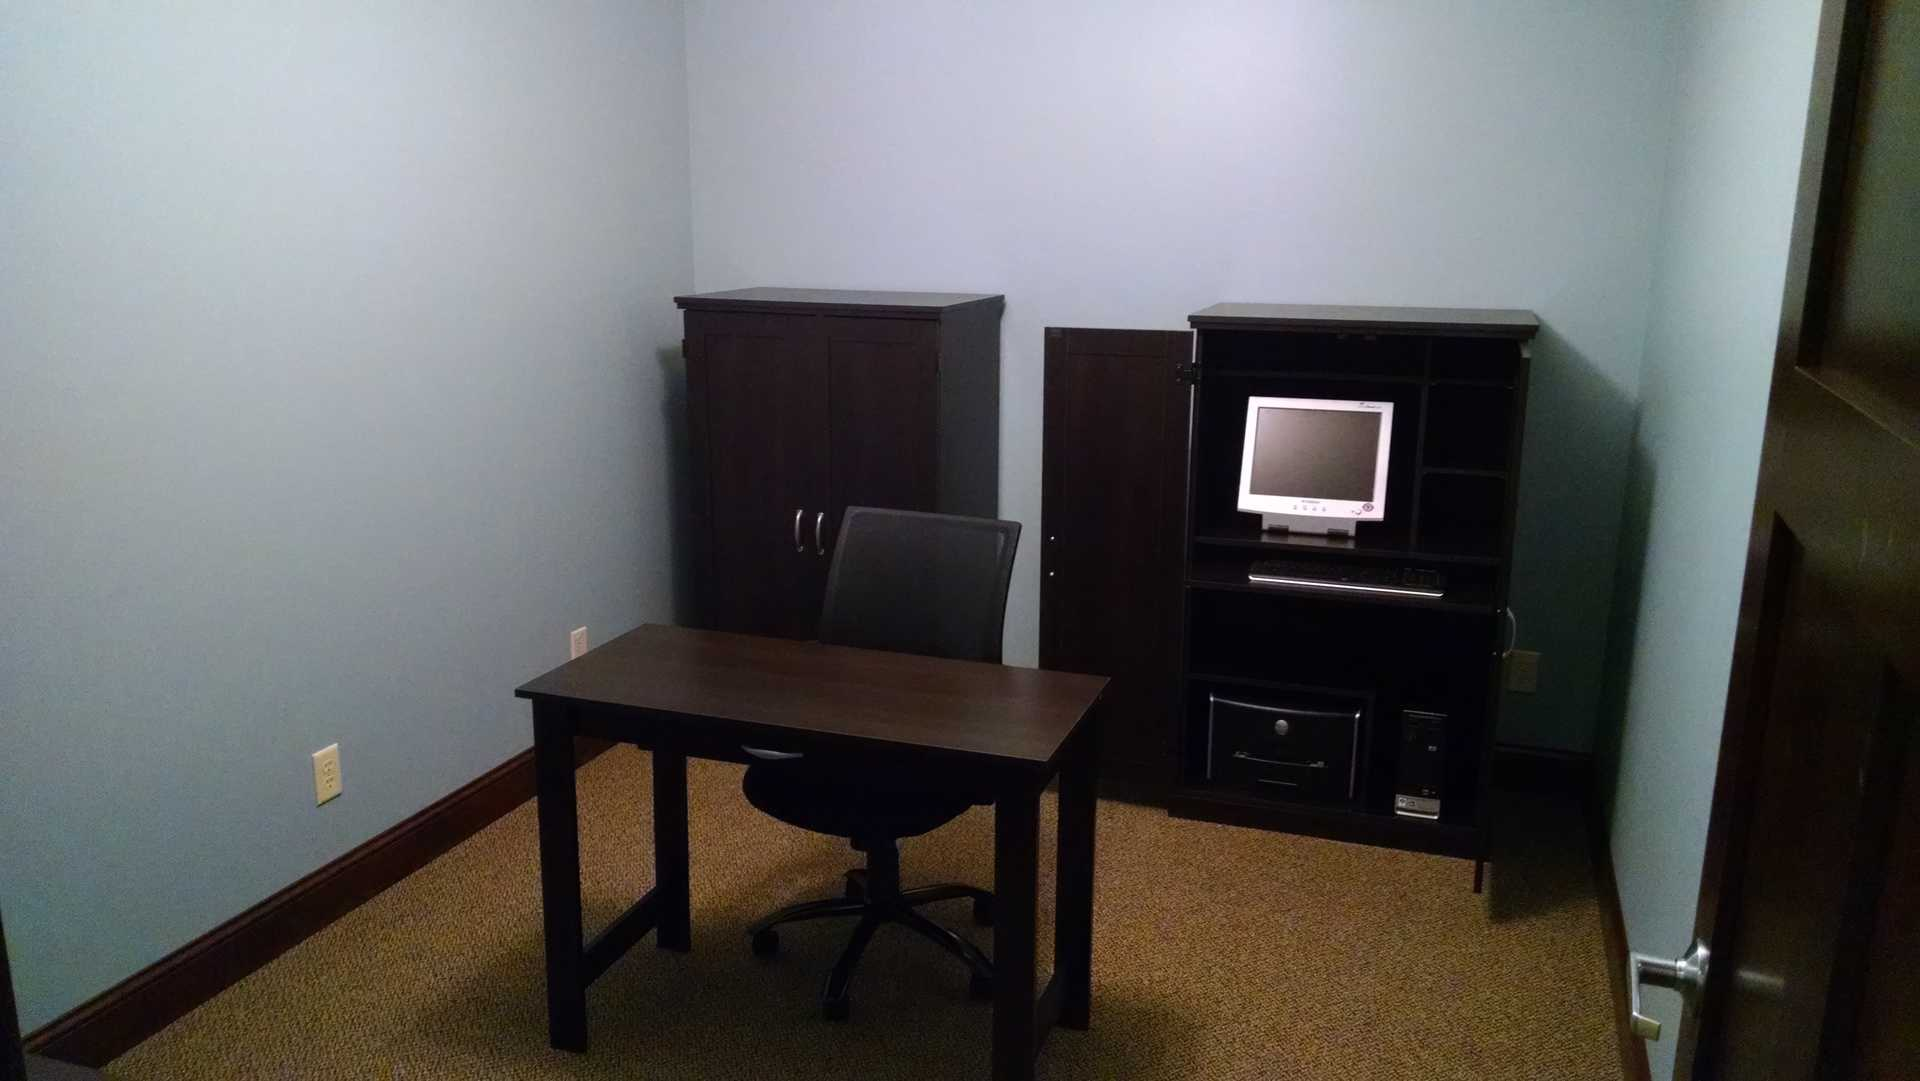 CFGC rental office 011416